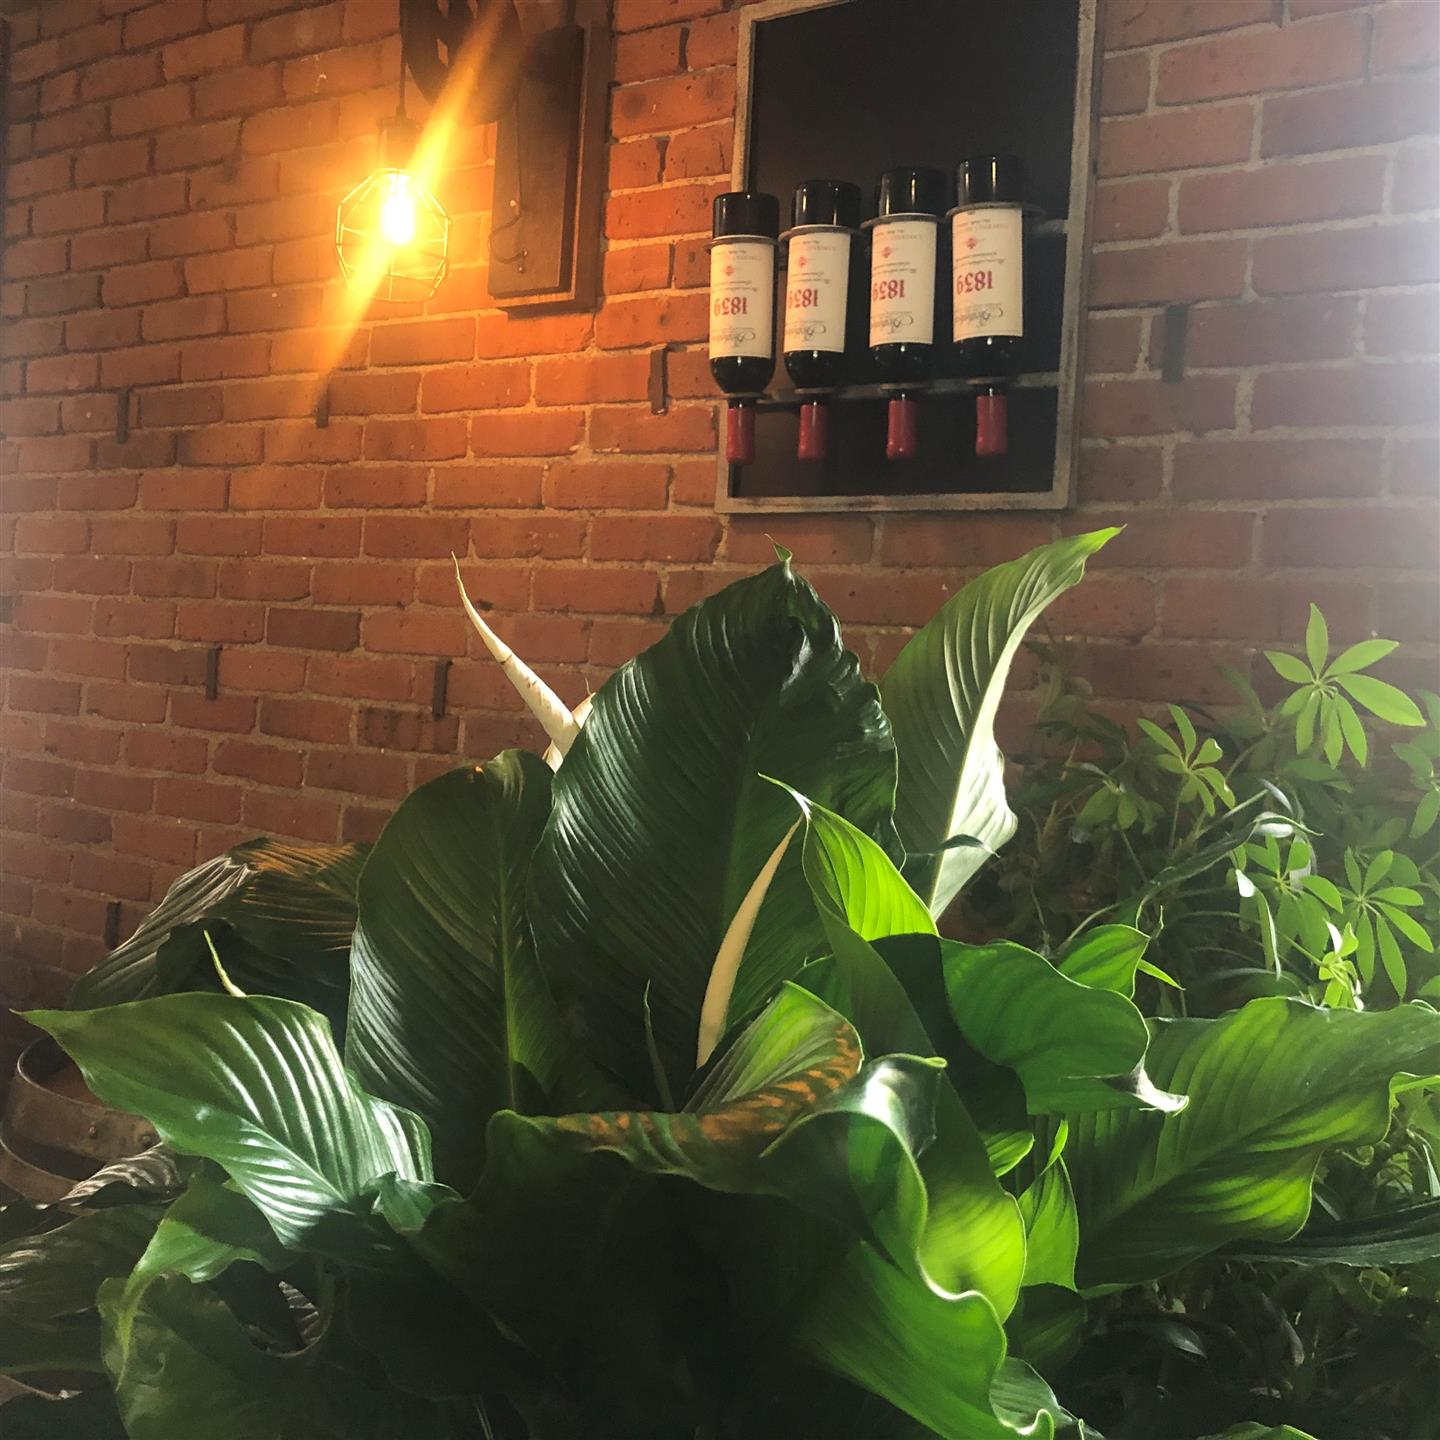 green plants infront of a brick wall and wine bottles hanging on the wall